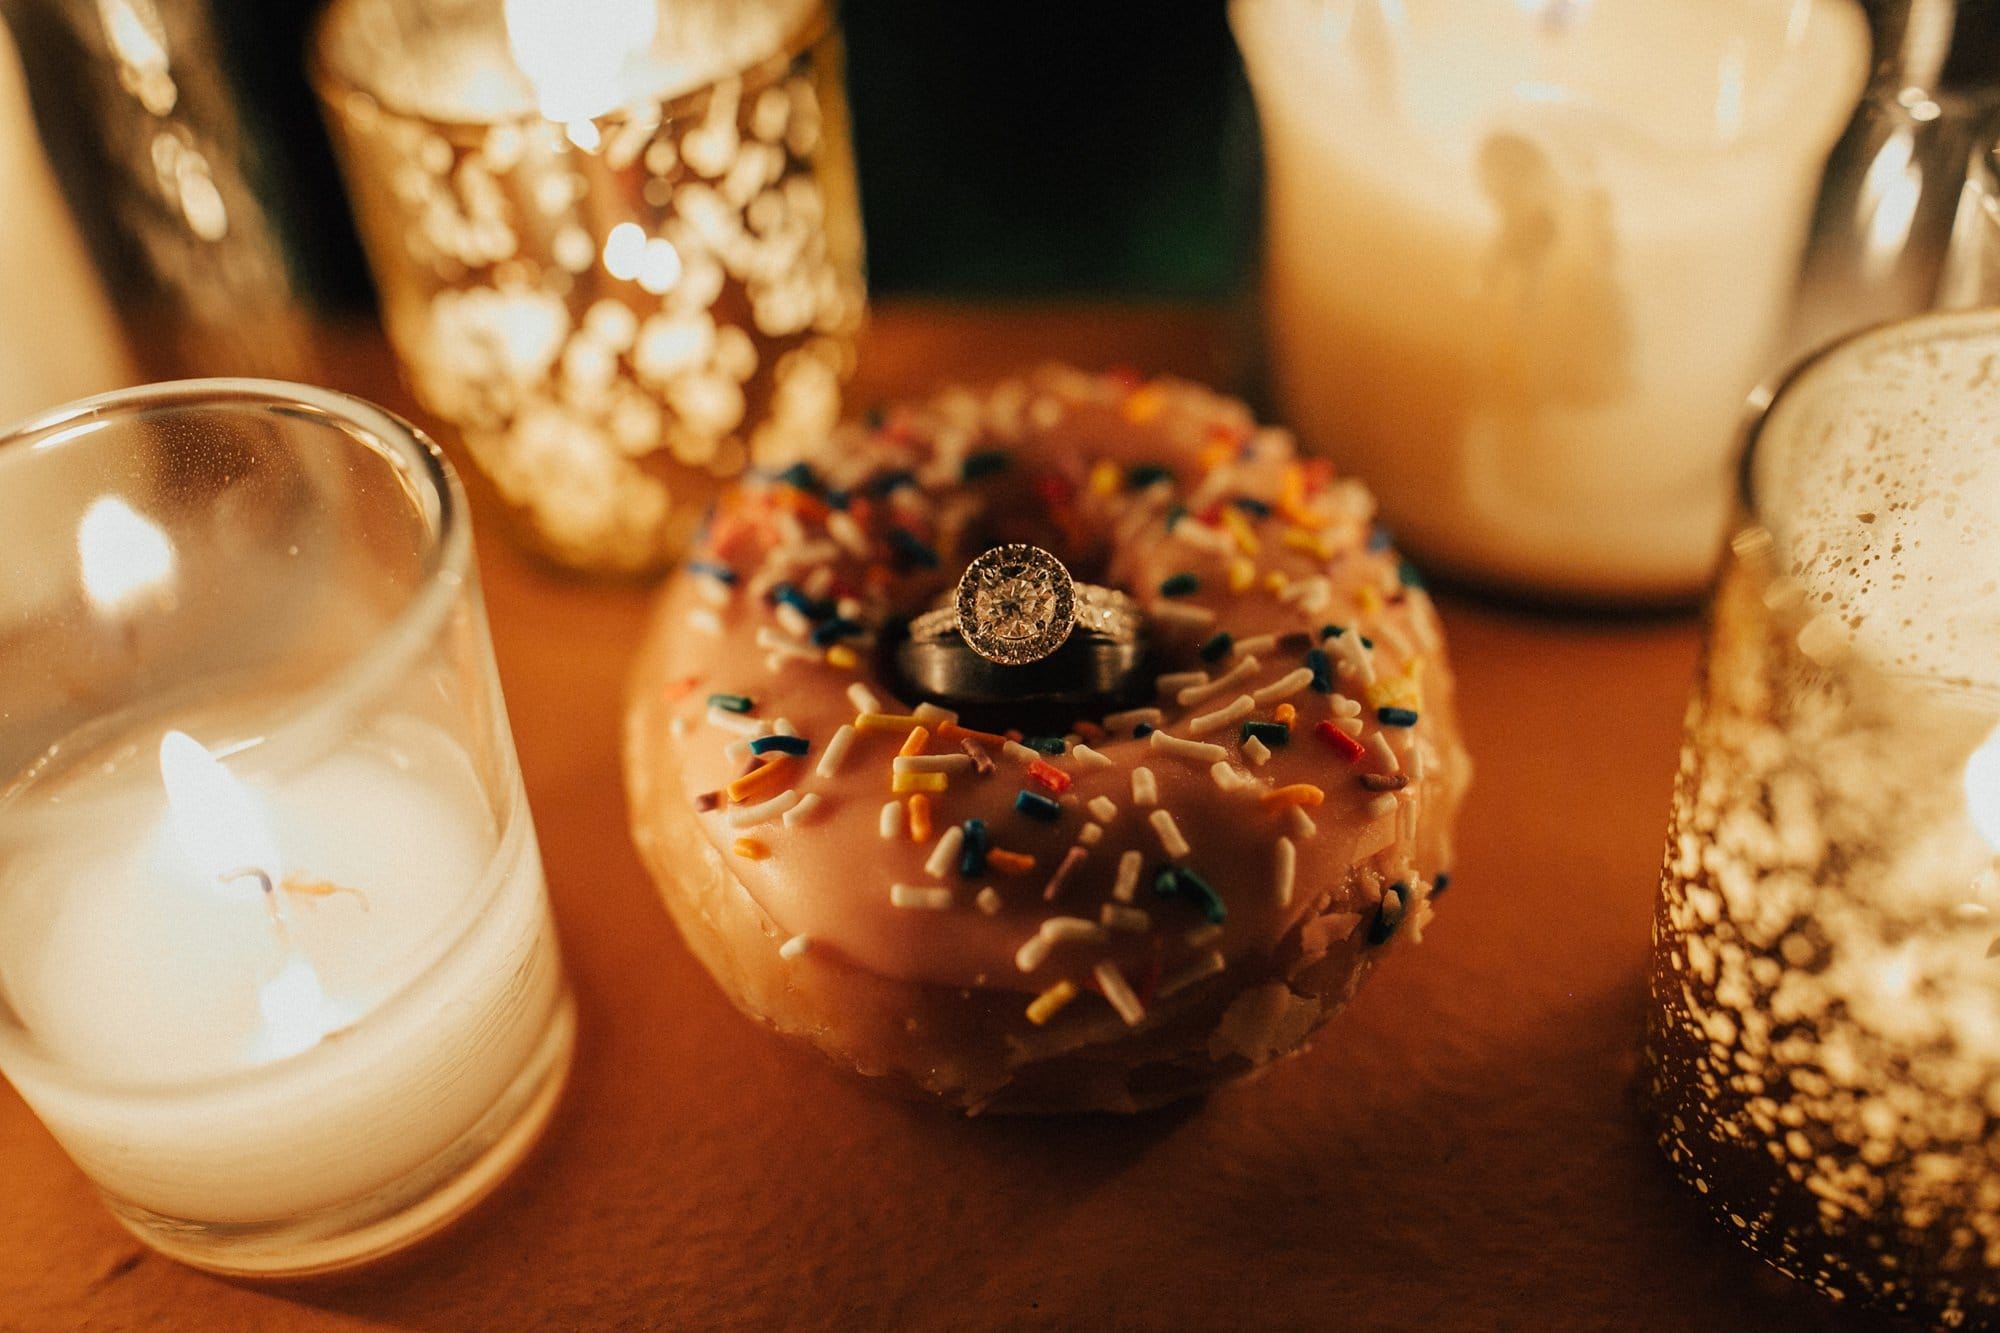 wedding ring shot with donut and candles